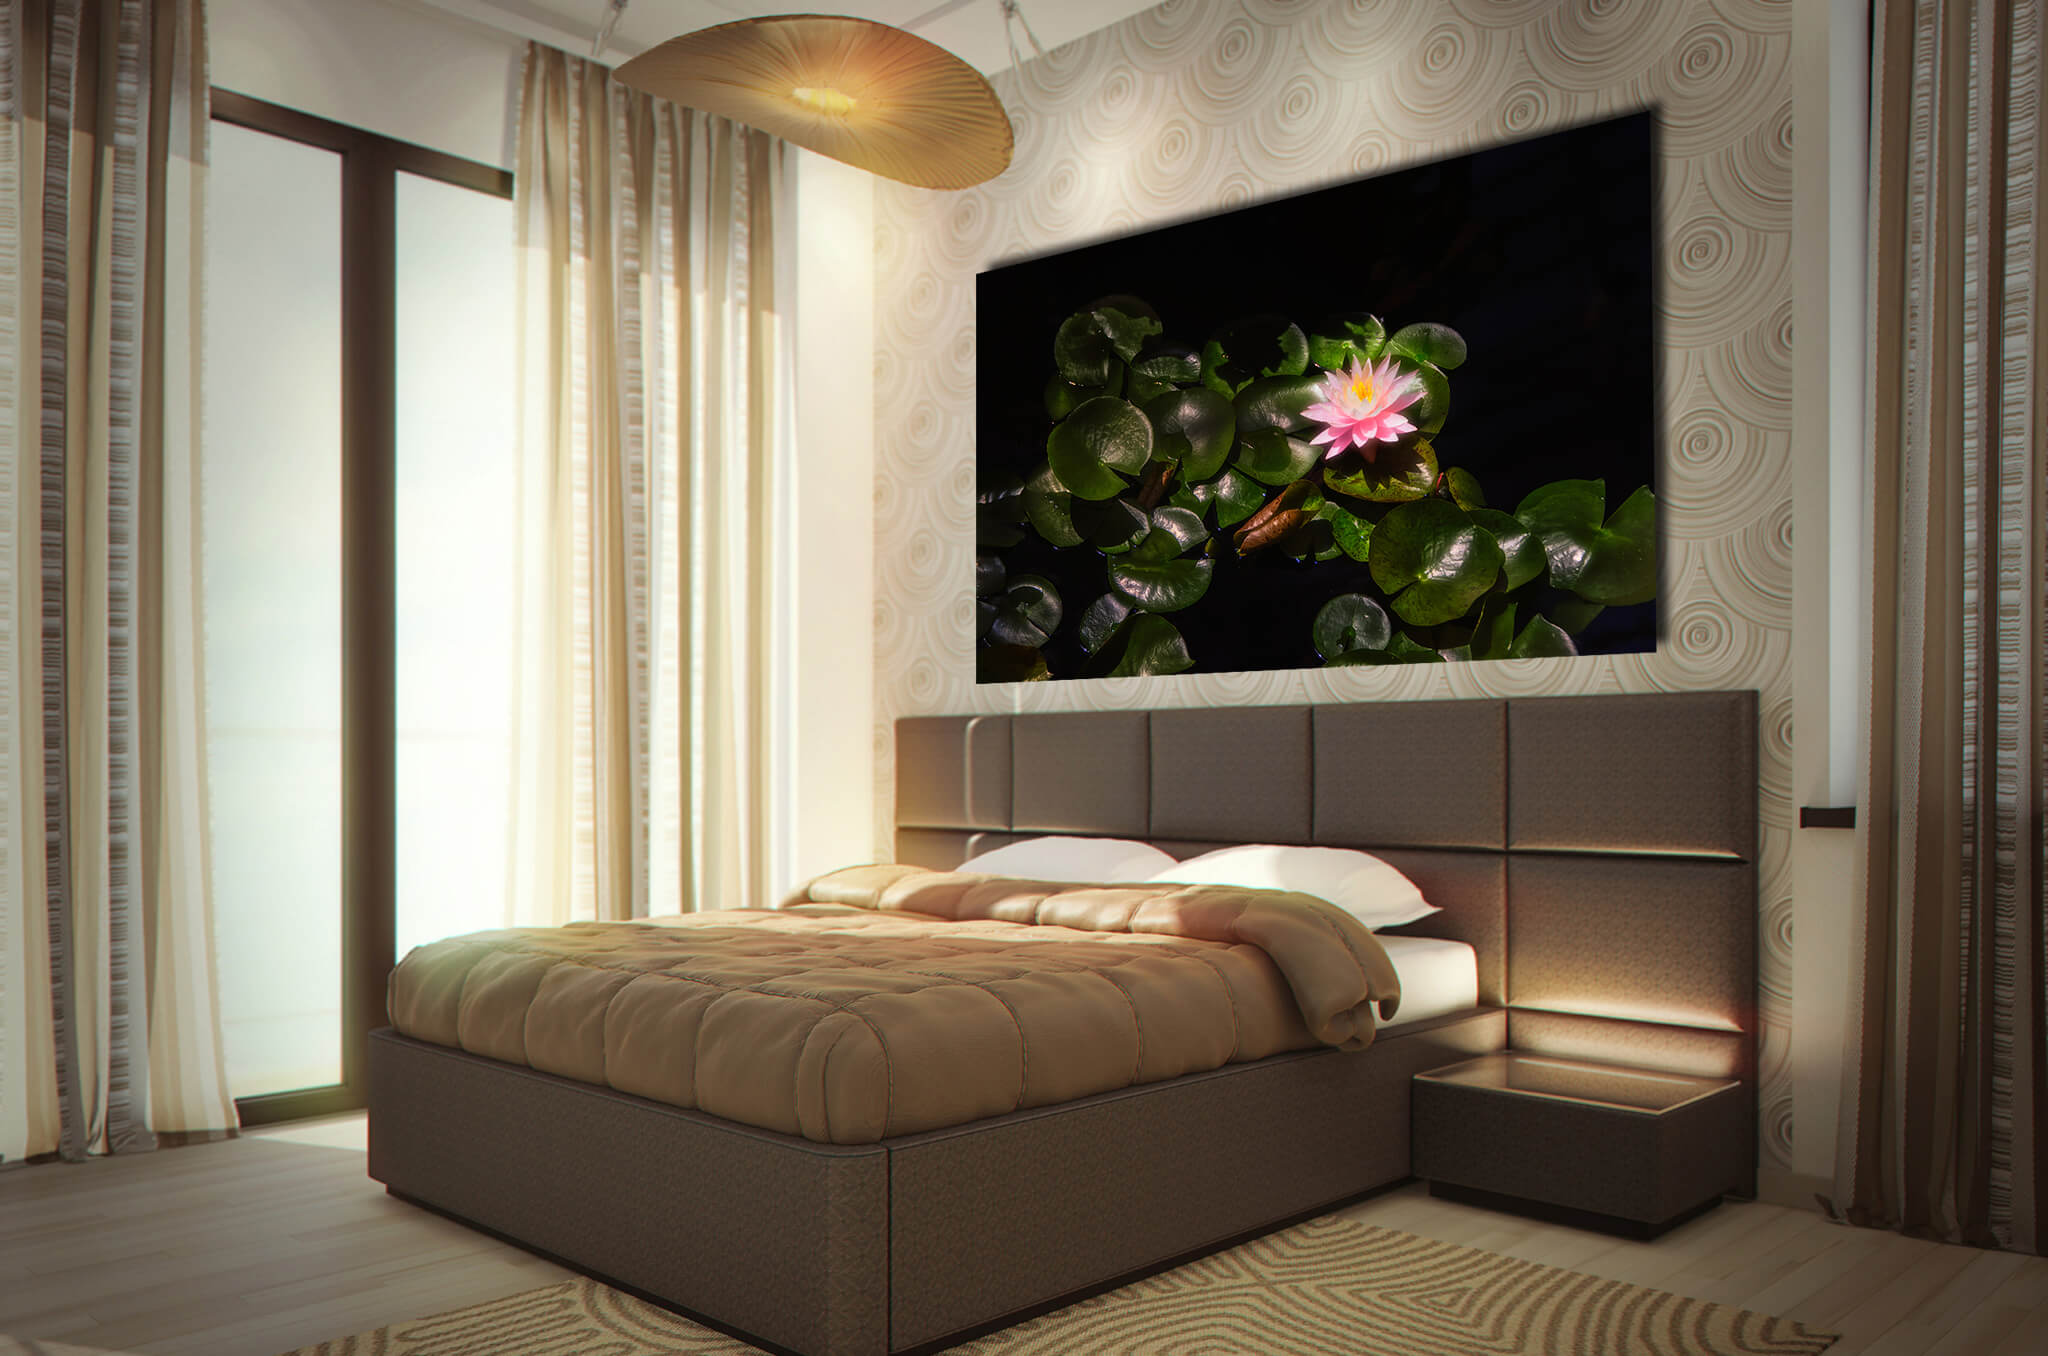 bedroom artwork. Bedroom Flower Art Wall  Ideas for Franklin Arts